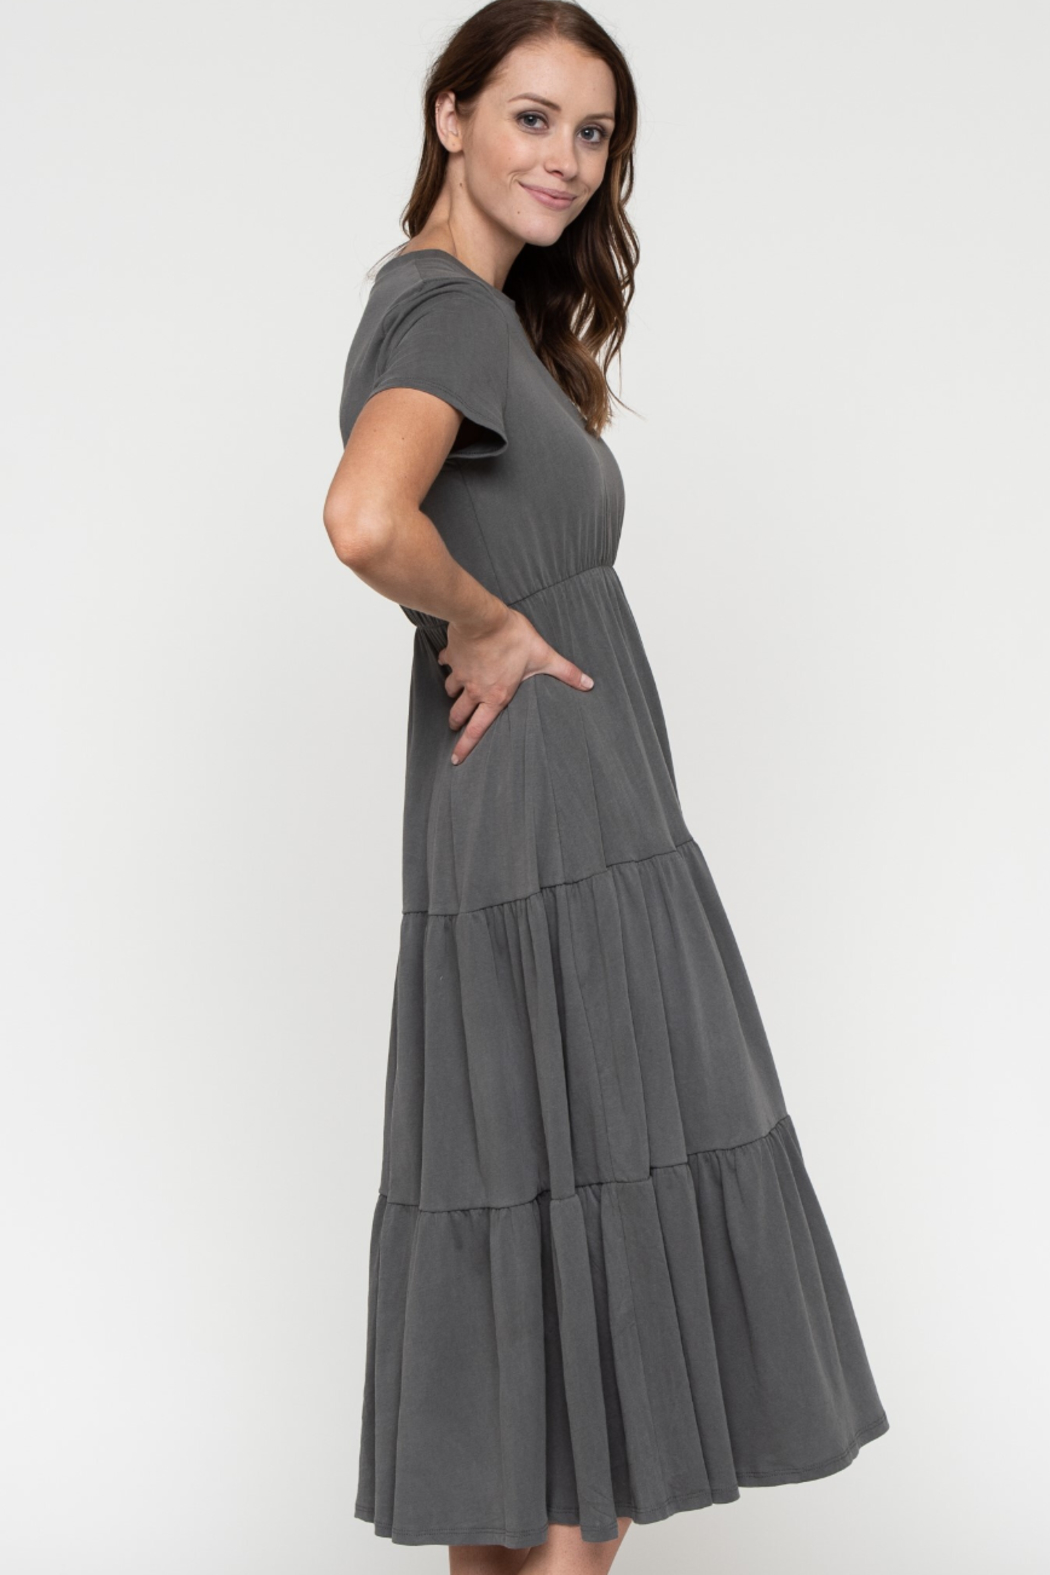 Downeast  Garment Dye Tiered Dress - Front Full Image